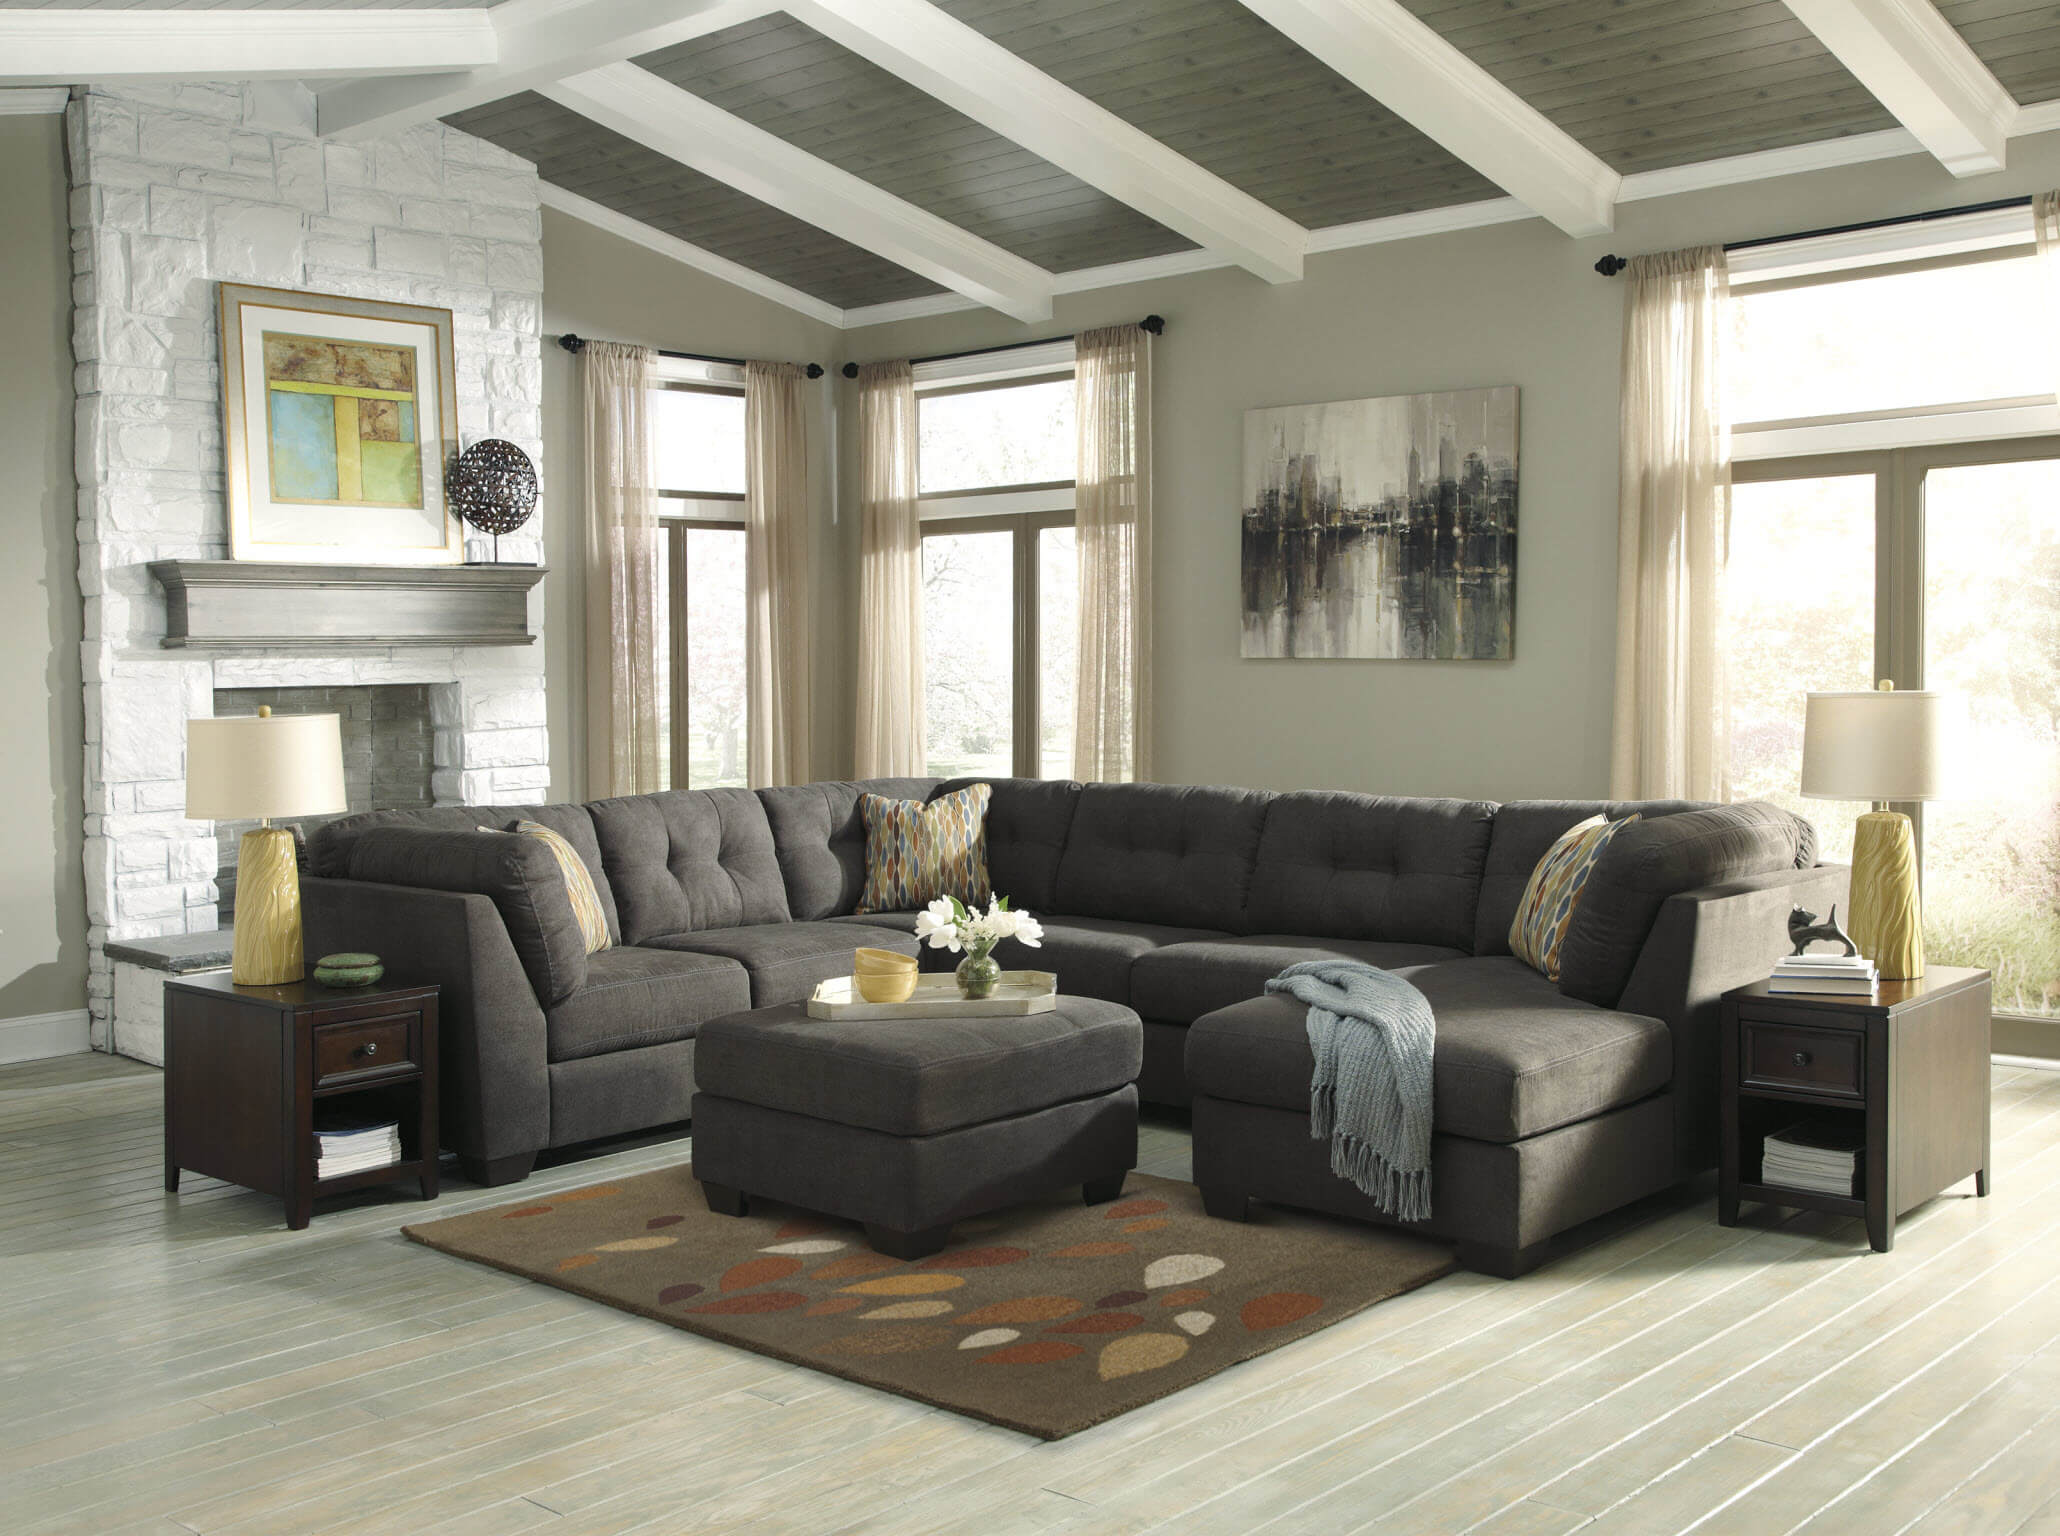 Delta City Steel Sectional